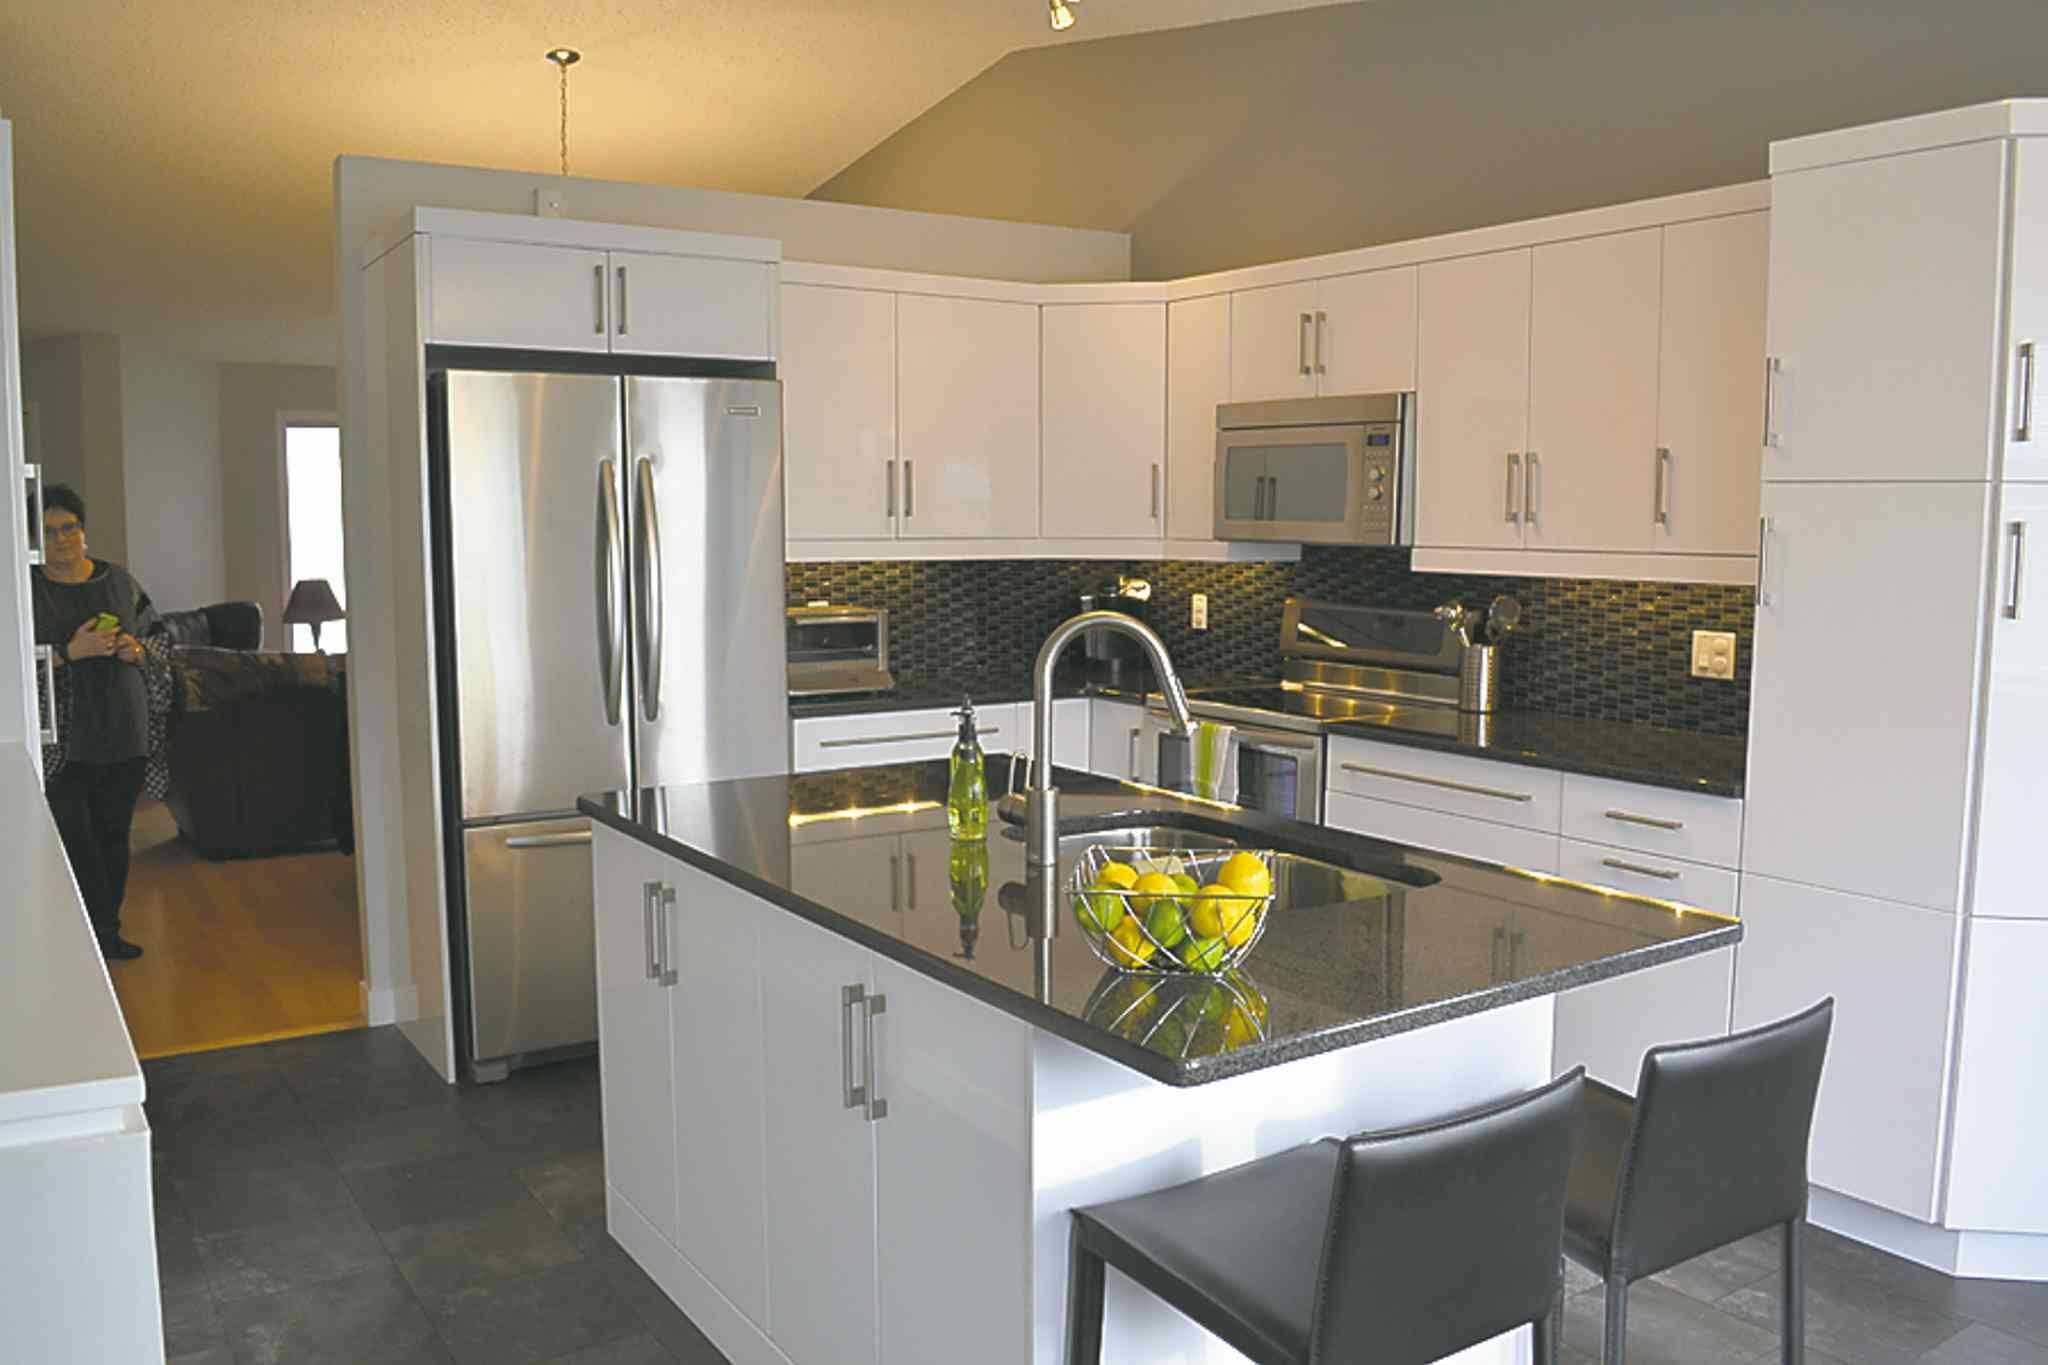 Thermofoil Kitchen Cabinets High Gloss Thermofoil Cabinets Google Search Kitchens